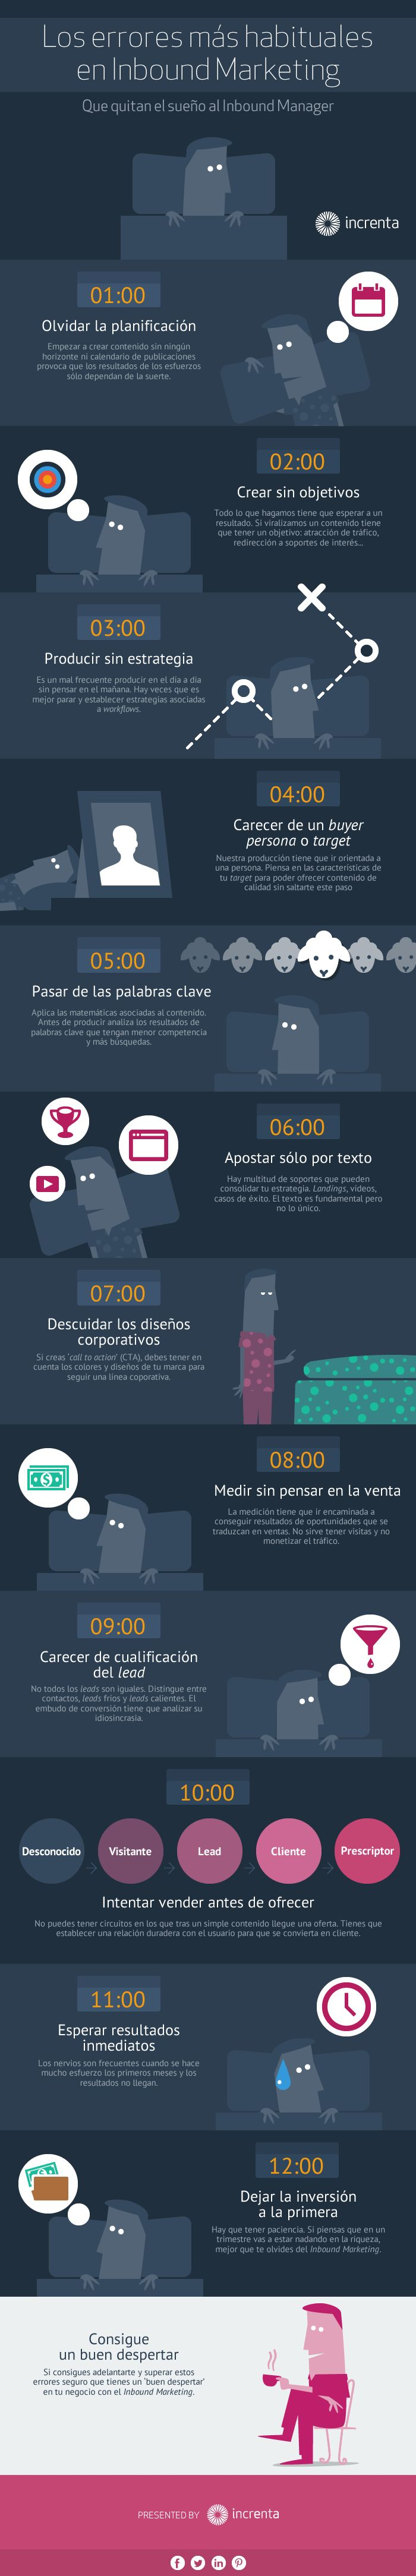 Los errores más habituales del Inbound Marketing #infografia #infographic #marketing